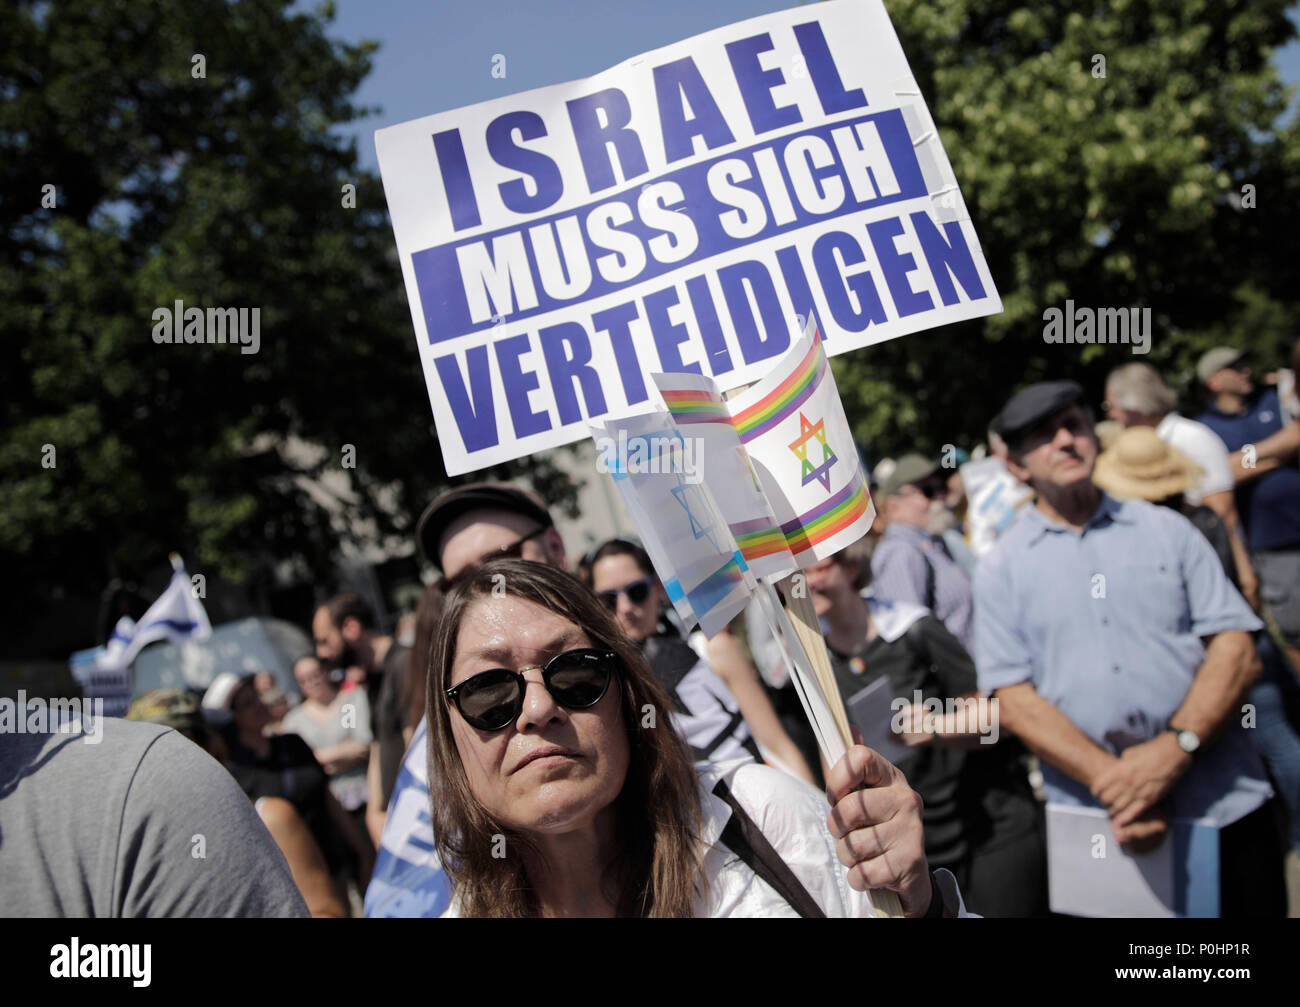 09 June 2018, Germany, Berlin: Protesters oppose ongoing anti-Israel demonstrations on Quds Day, which calls for a show of solidarity with Palestine at the end of Ramadan. Photo: Carsten Koall/dpa - Stock Image